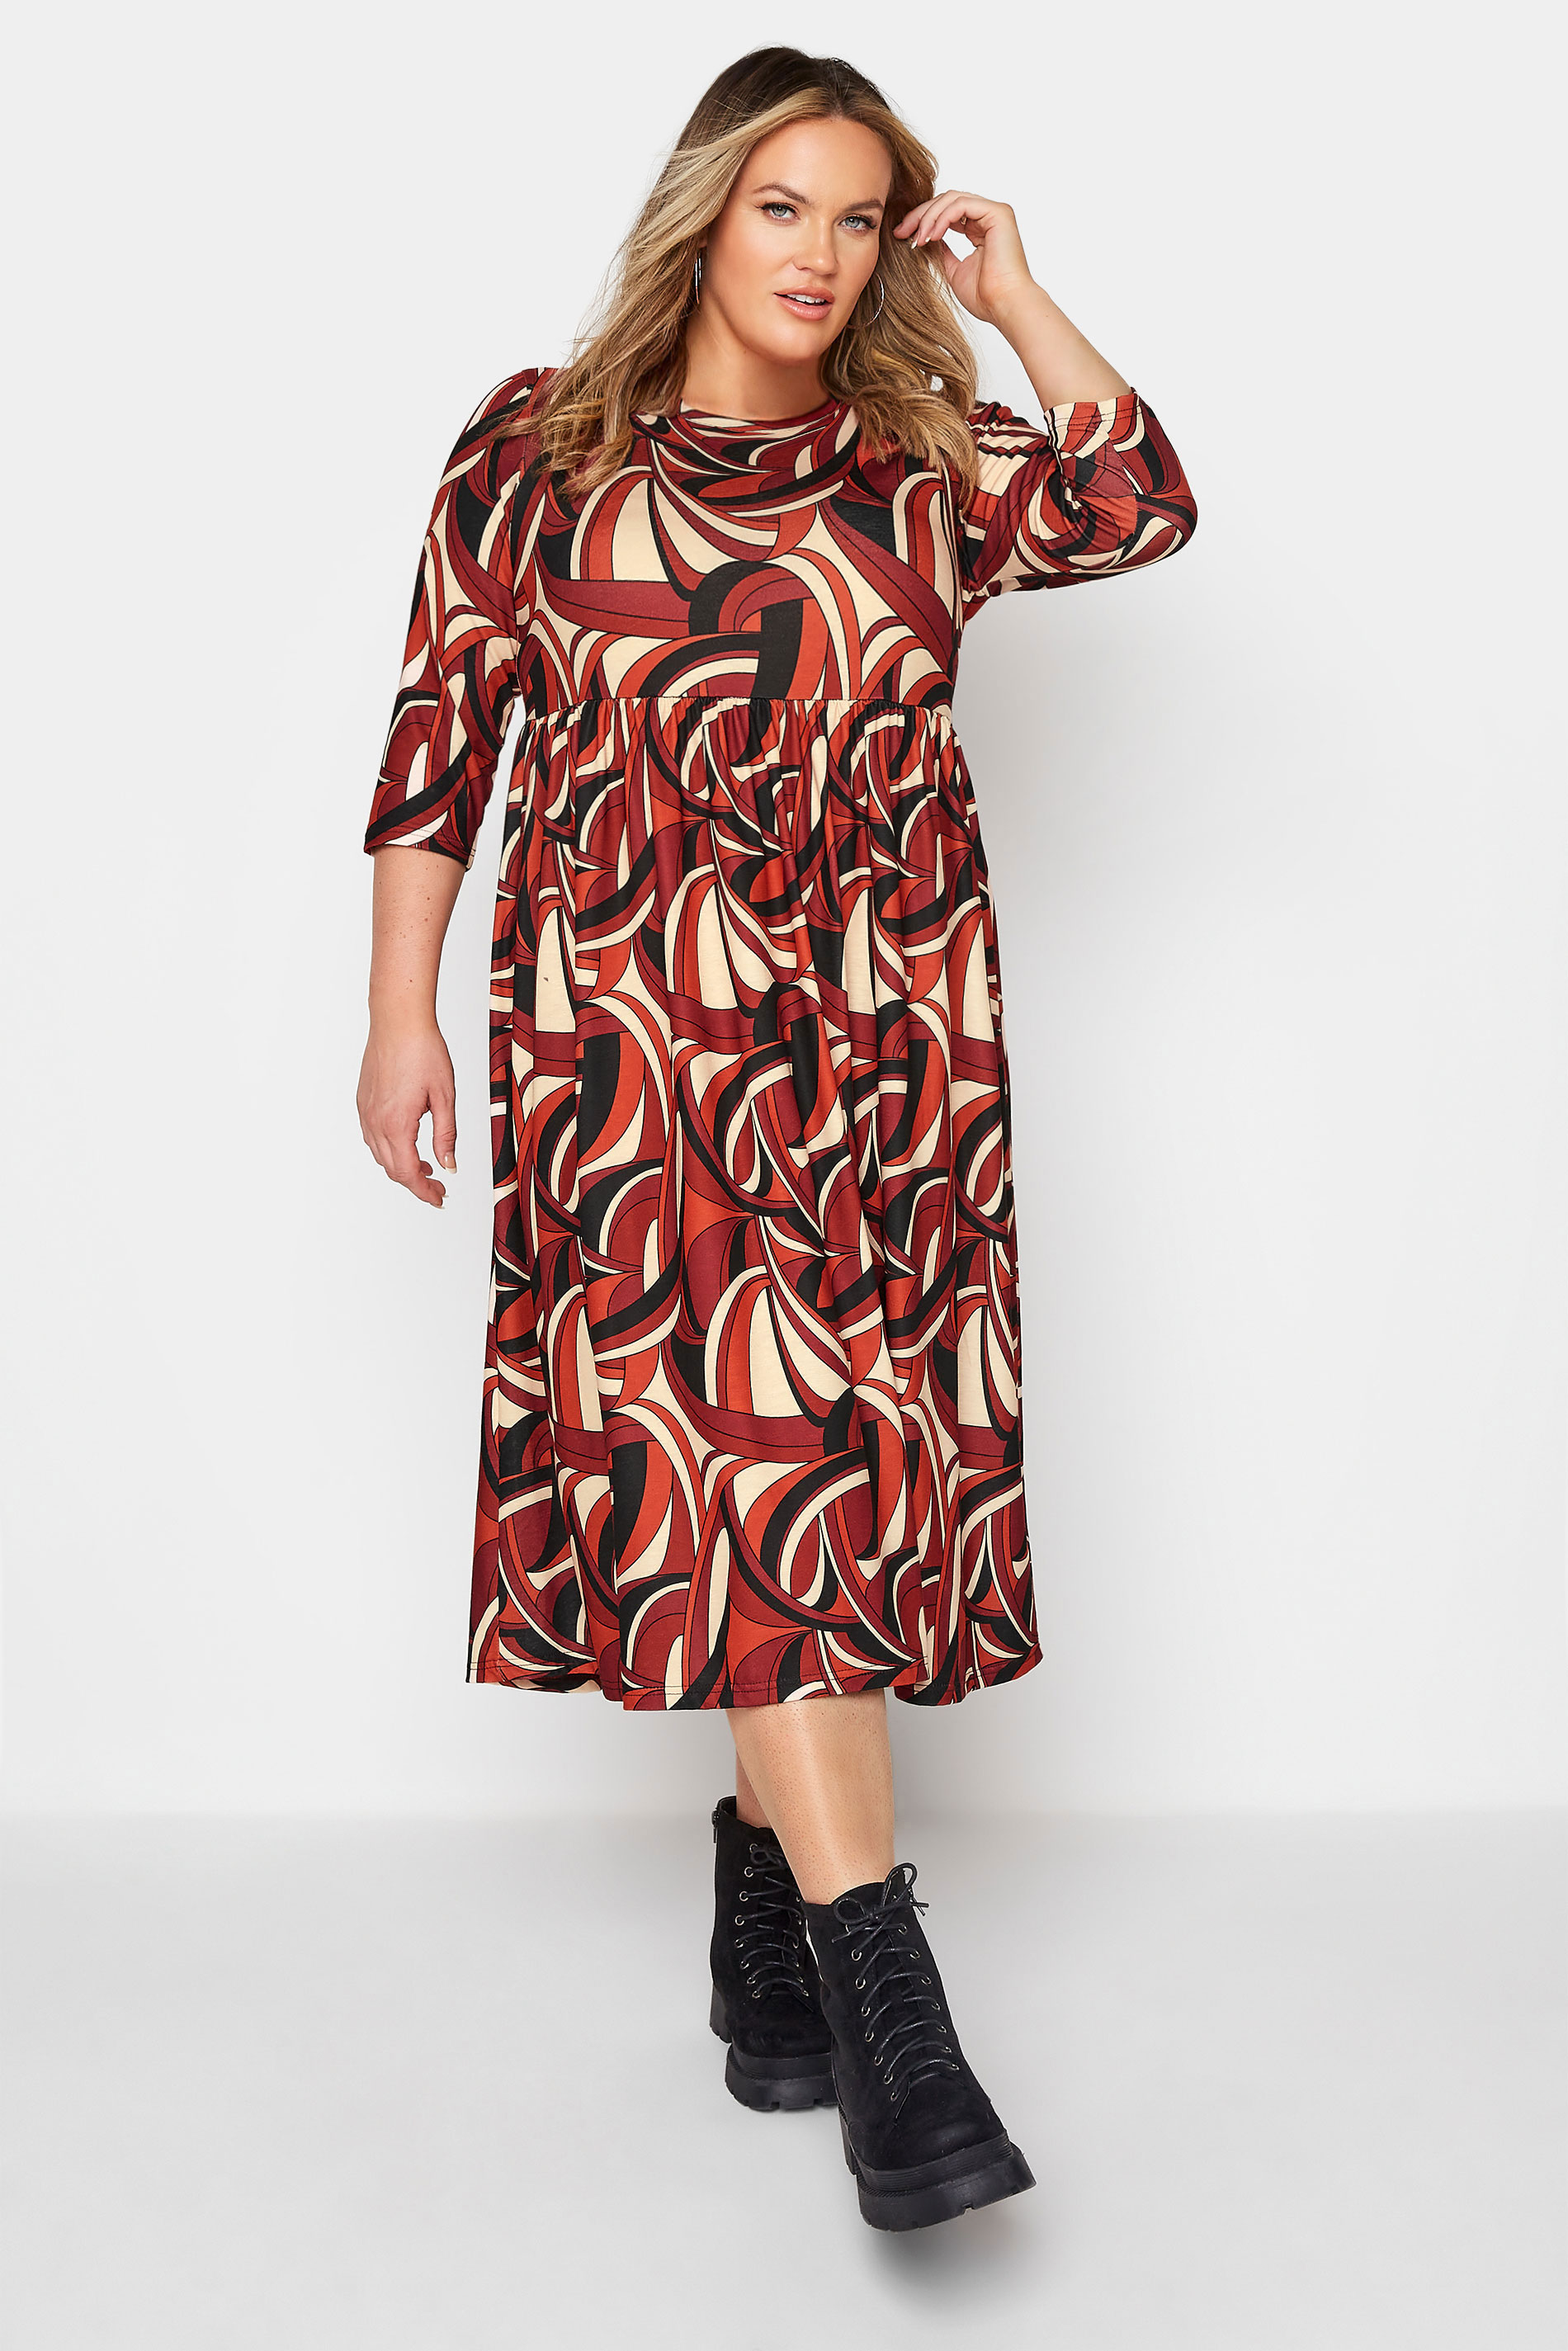 LIMITED COLLECTION Red Abstract Print Midaxi Dress_A.jpg